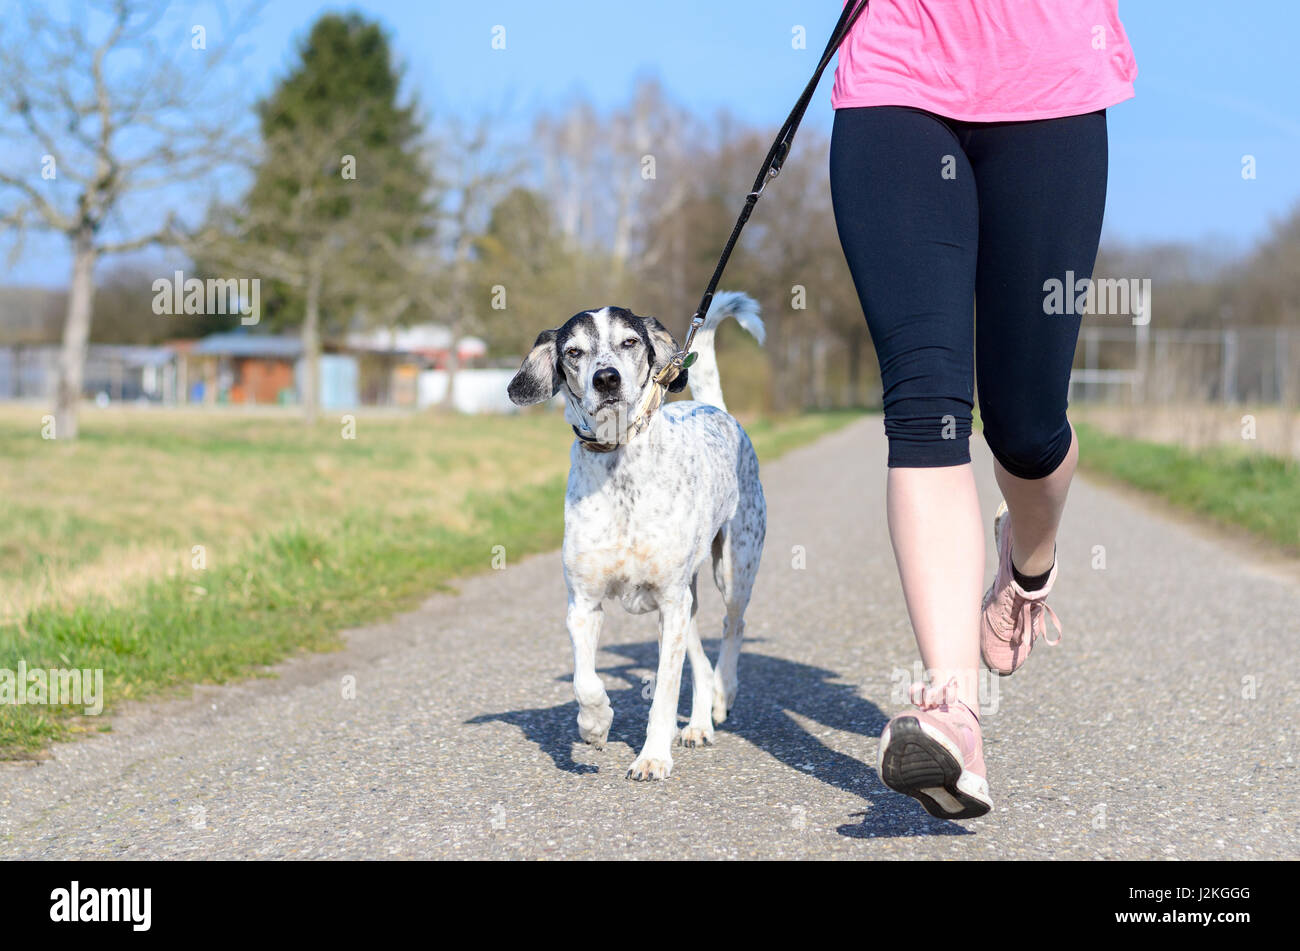 Fit athletic young woman running with her dog on a lead jogging along a rural lane in the sunshine, close up view - Stock Image